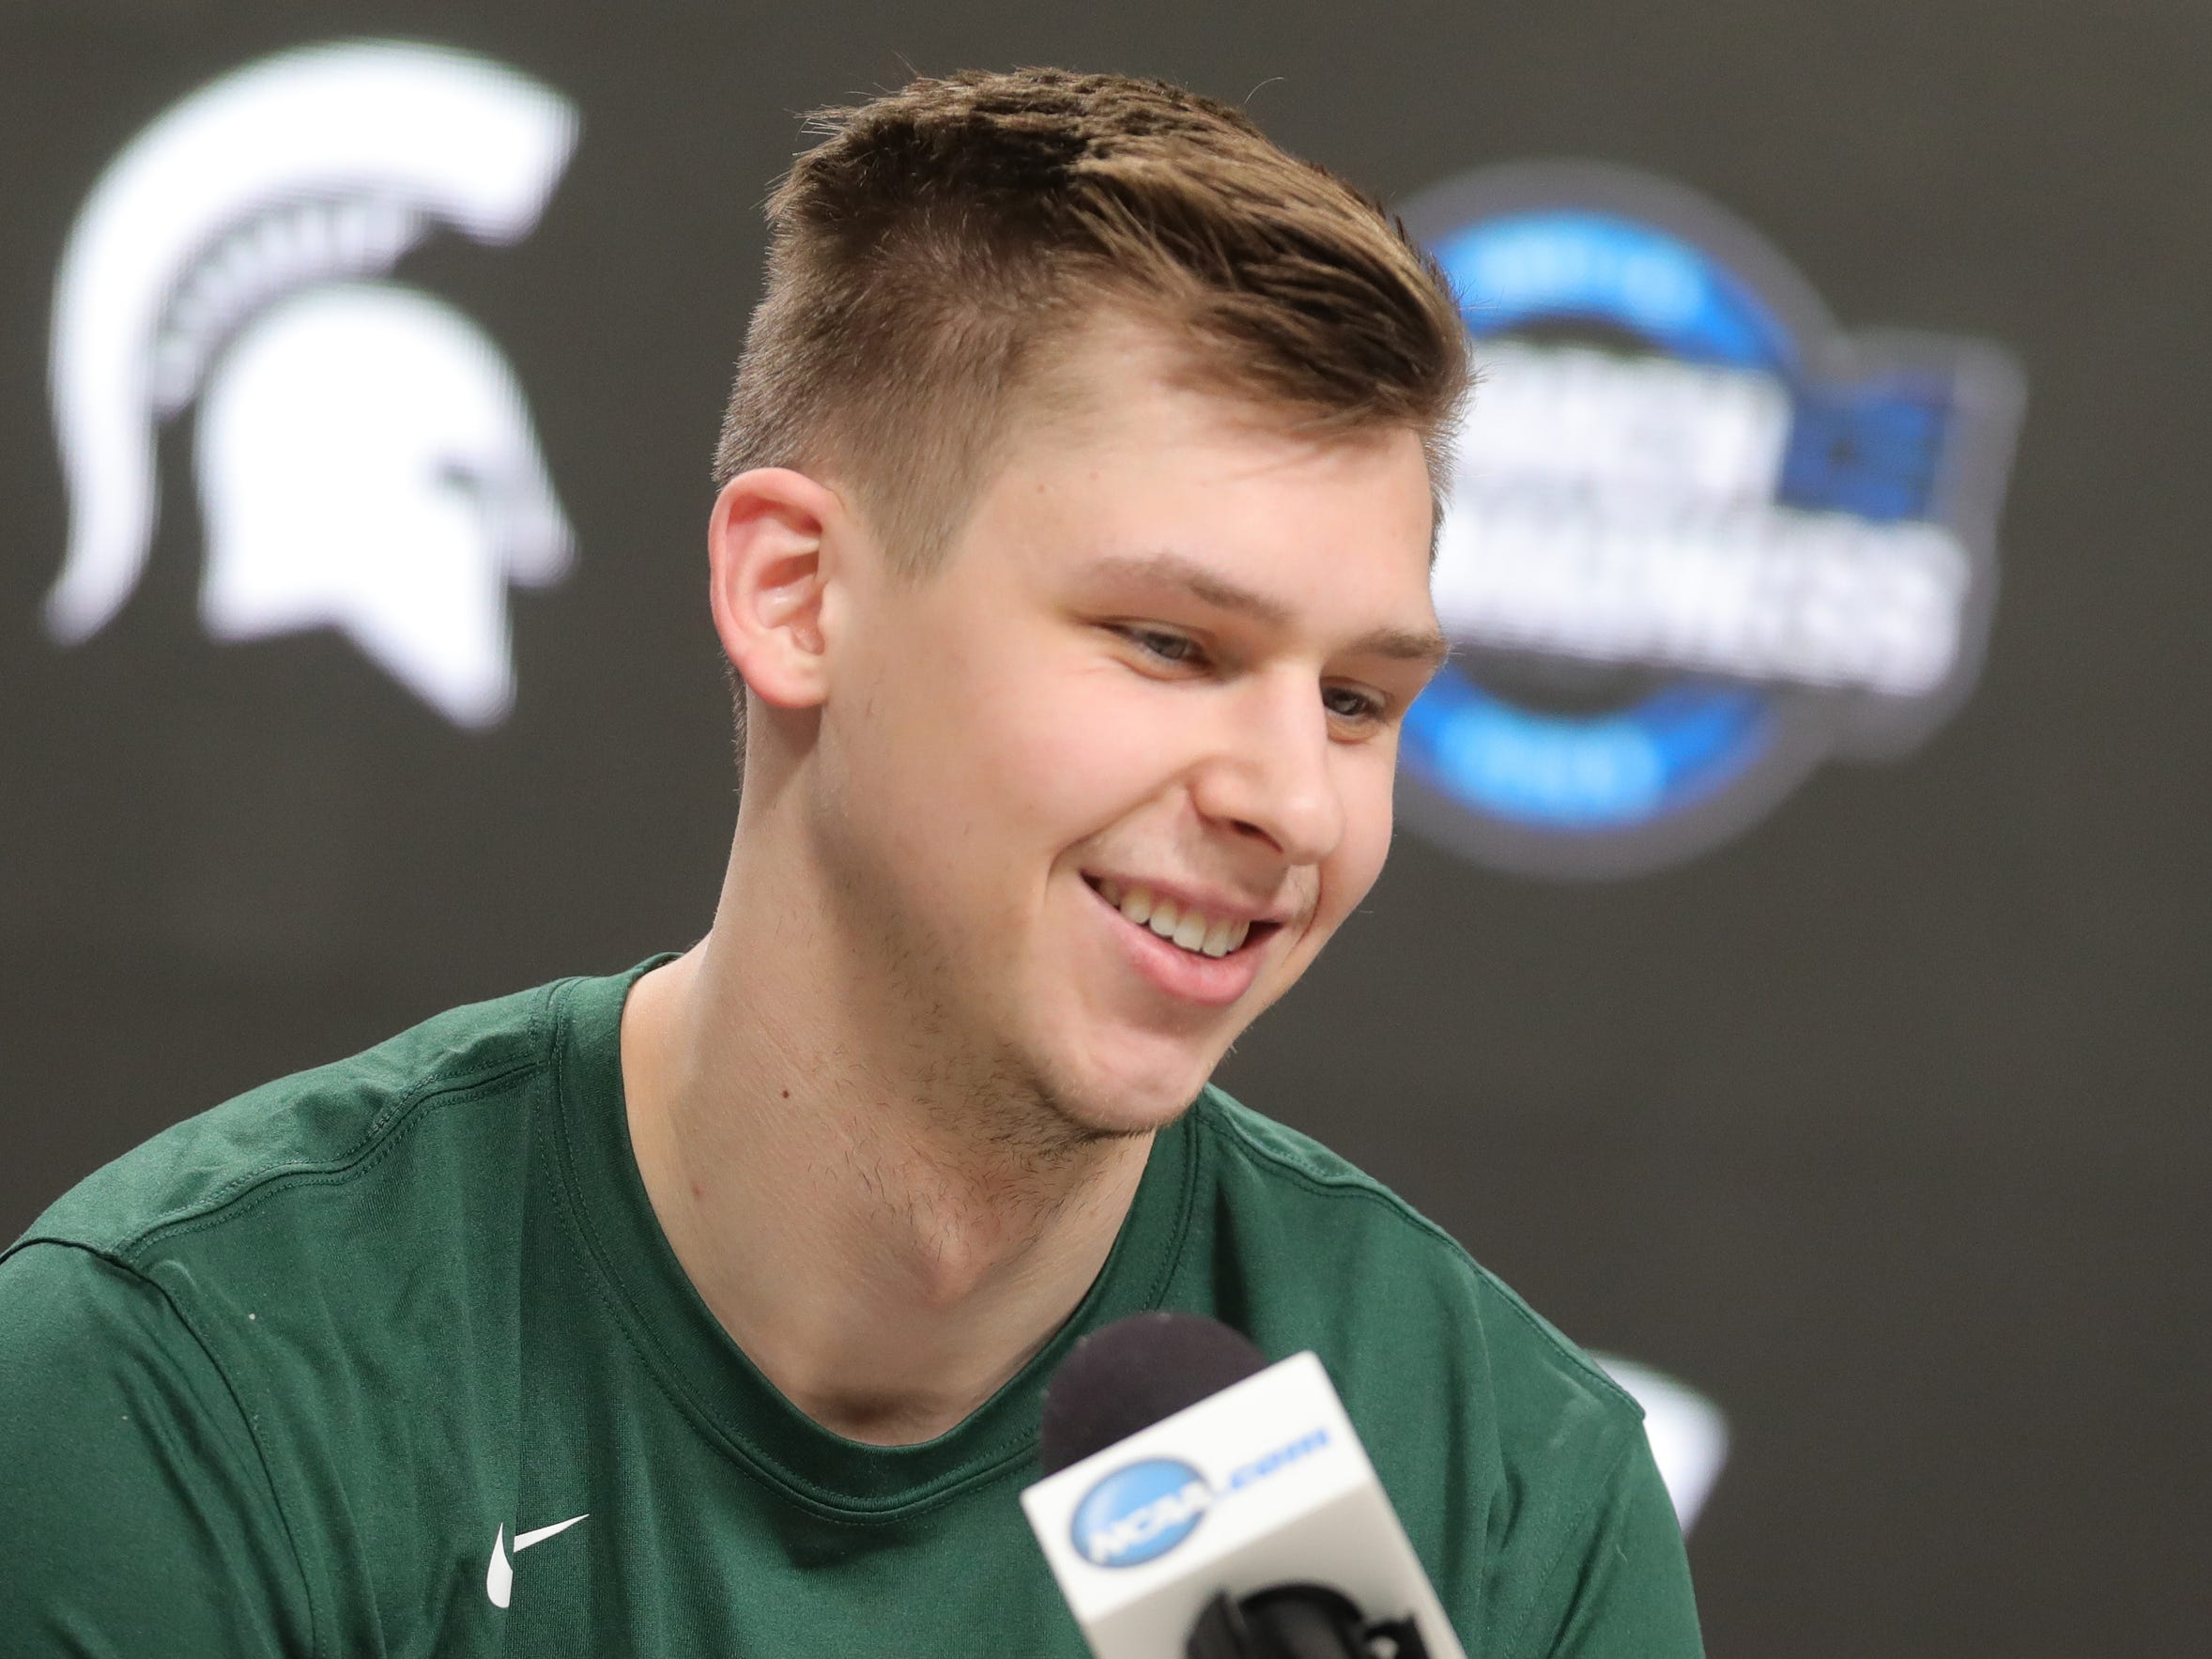 Michigan State guard Matt McQuaid talks with reporters about their Sweet 16 game against LSU, Thursday, March 28, 2019 at the Capital One Arena in Washington, D.C.